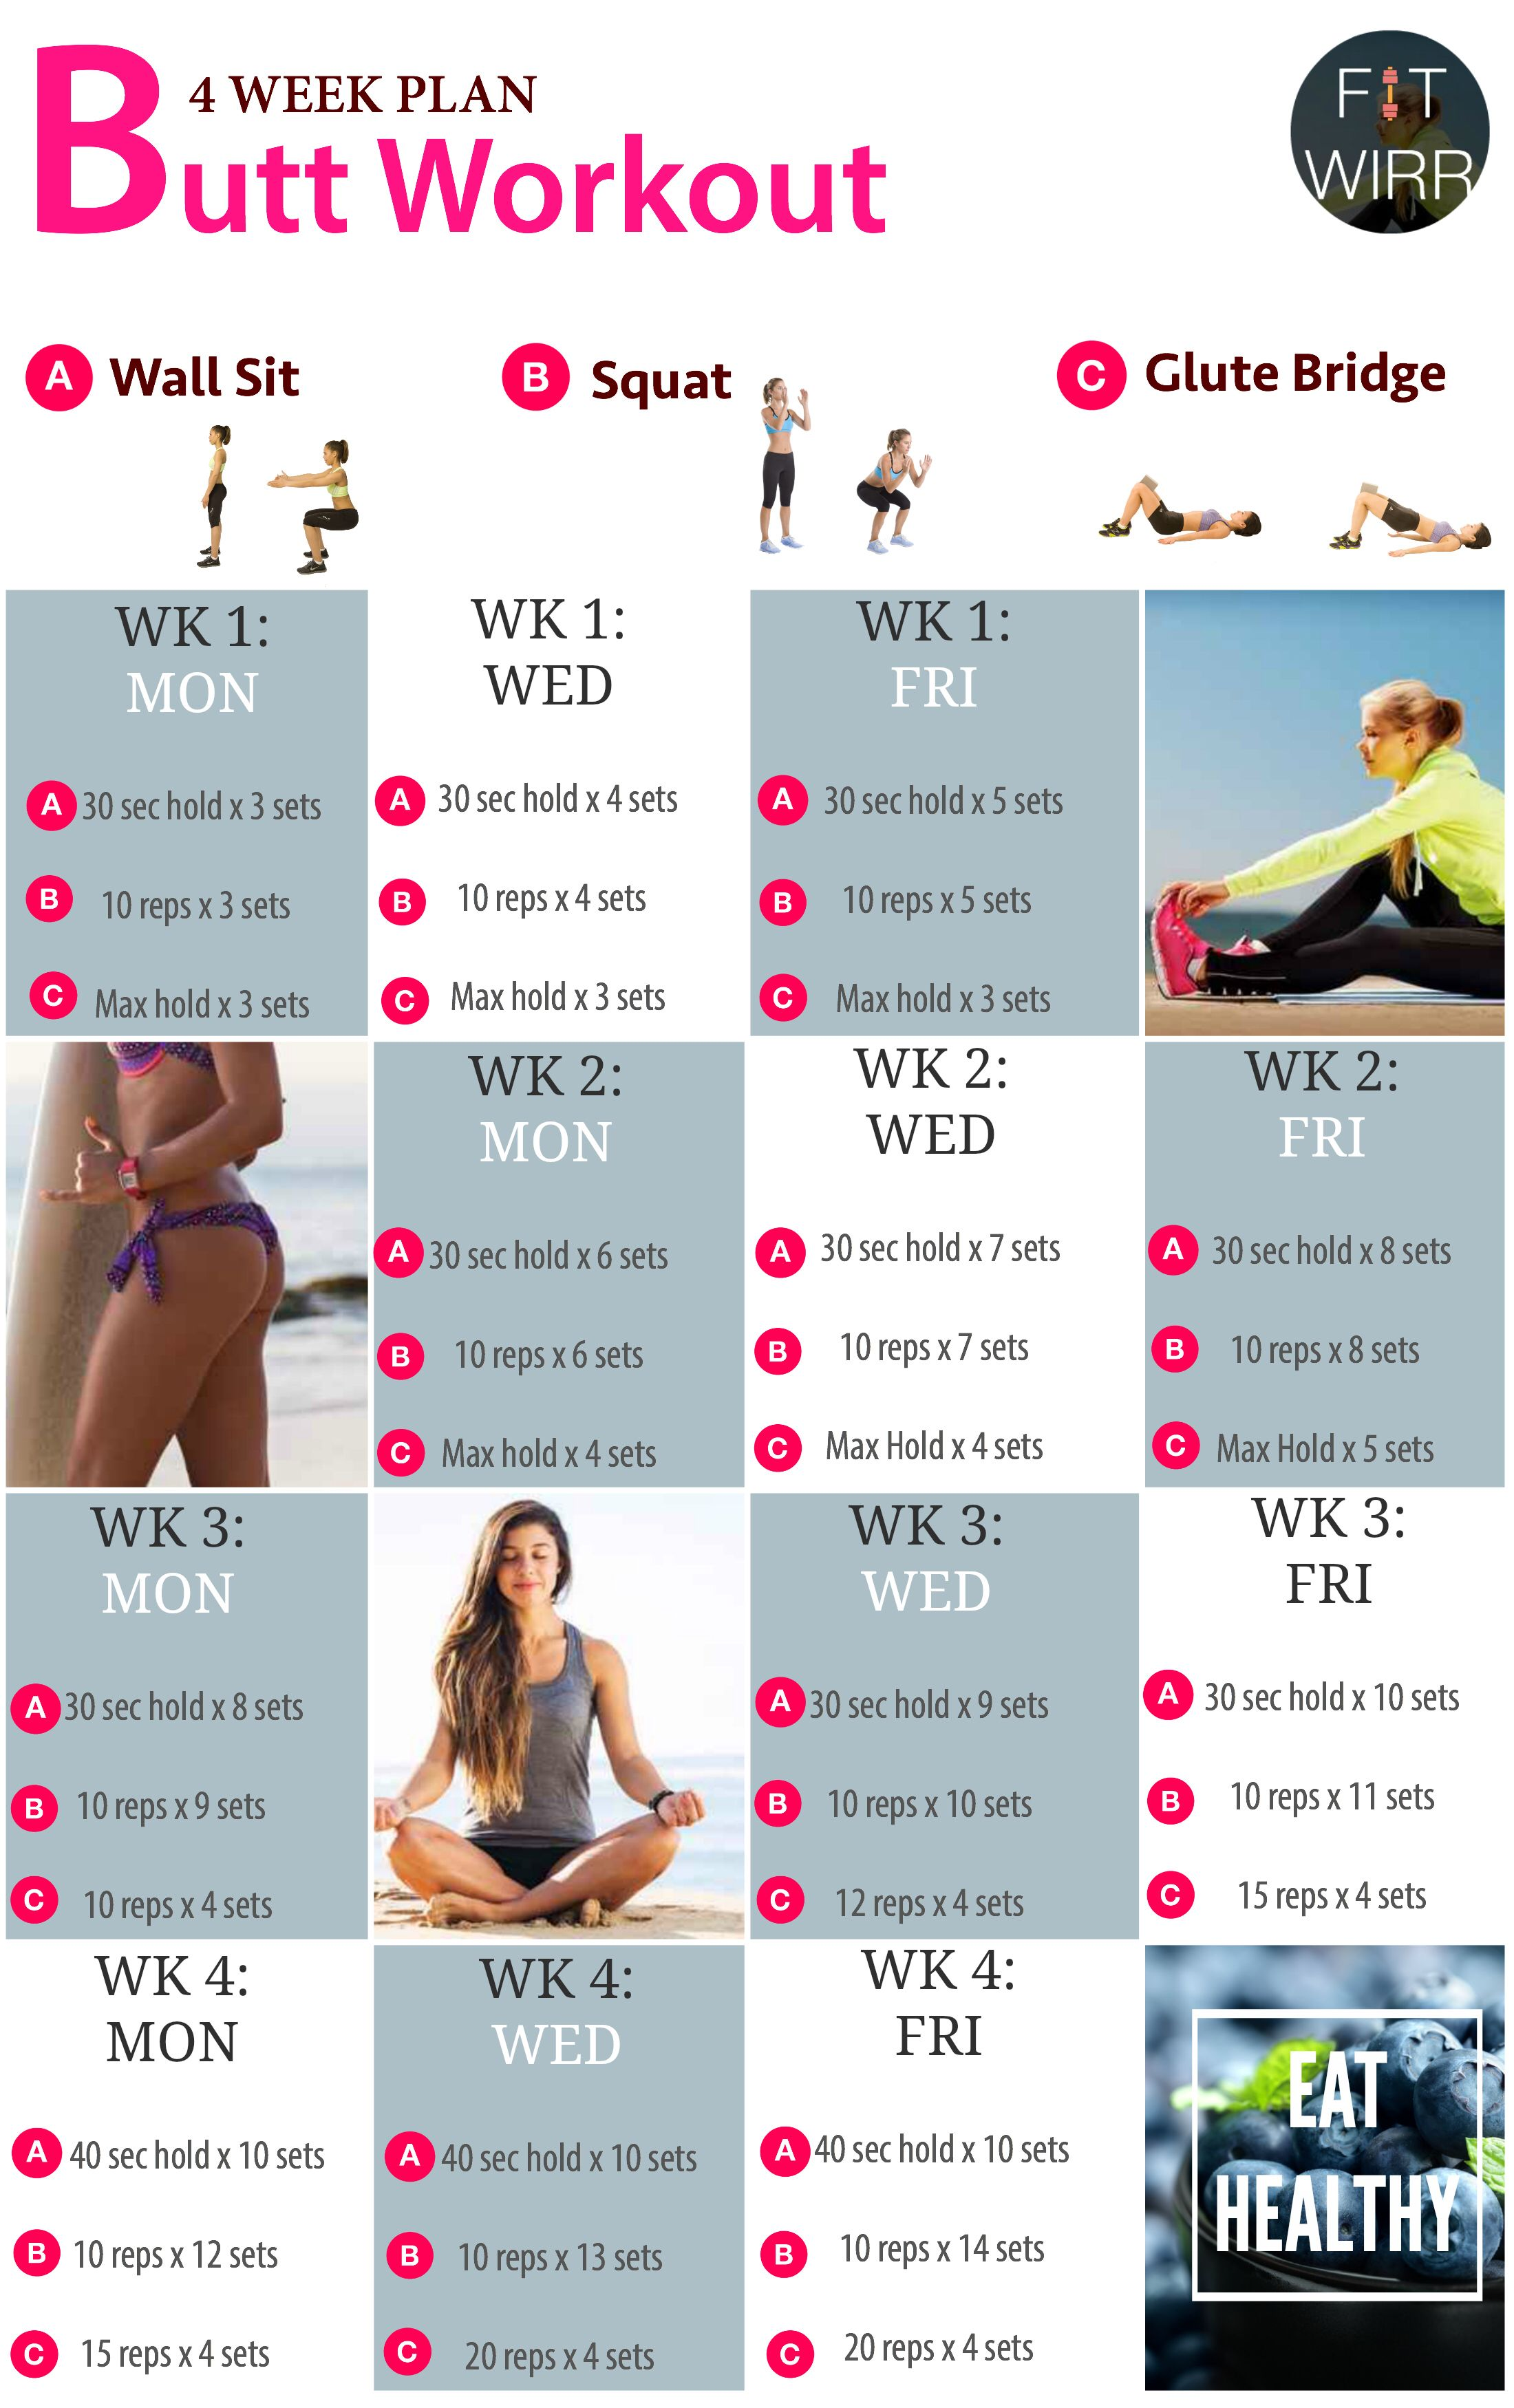 Pin by Alyssa Milward on Fitness Pinterest Workout Exercises